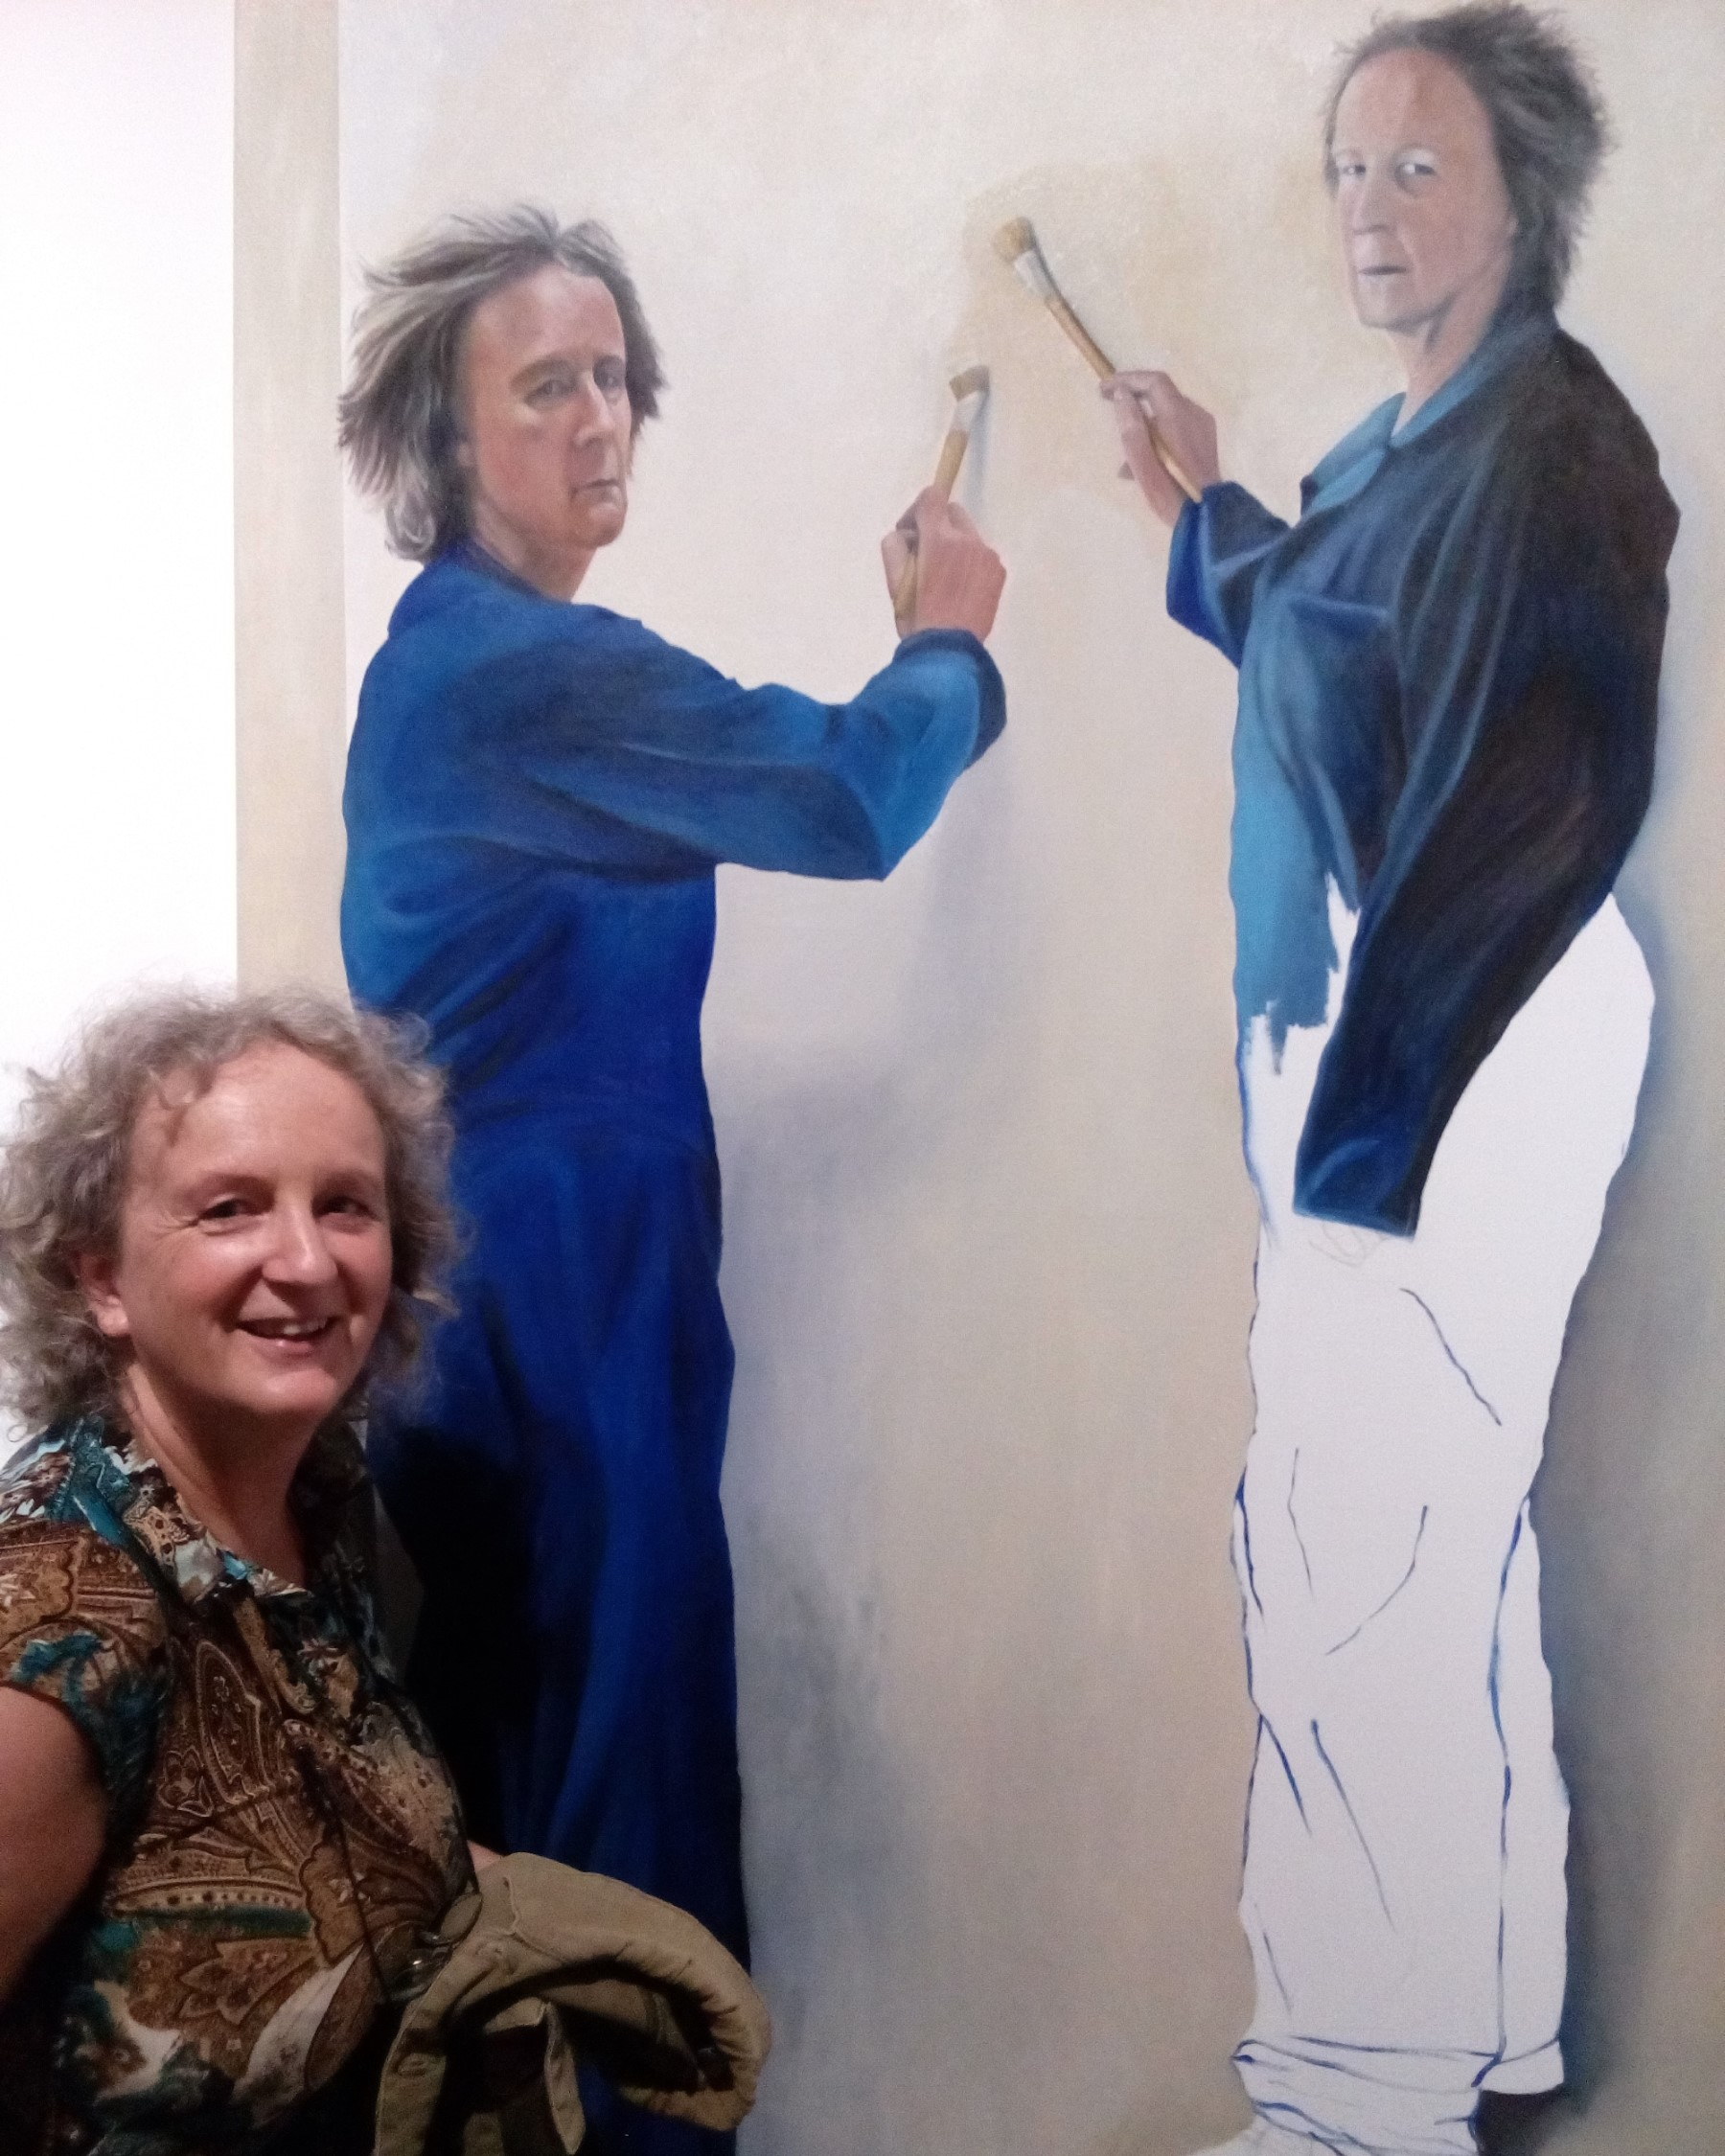 Susan Mabin standing in front of her portrait selected for the 2018 Adam Portrait Award